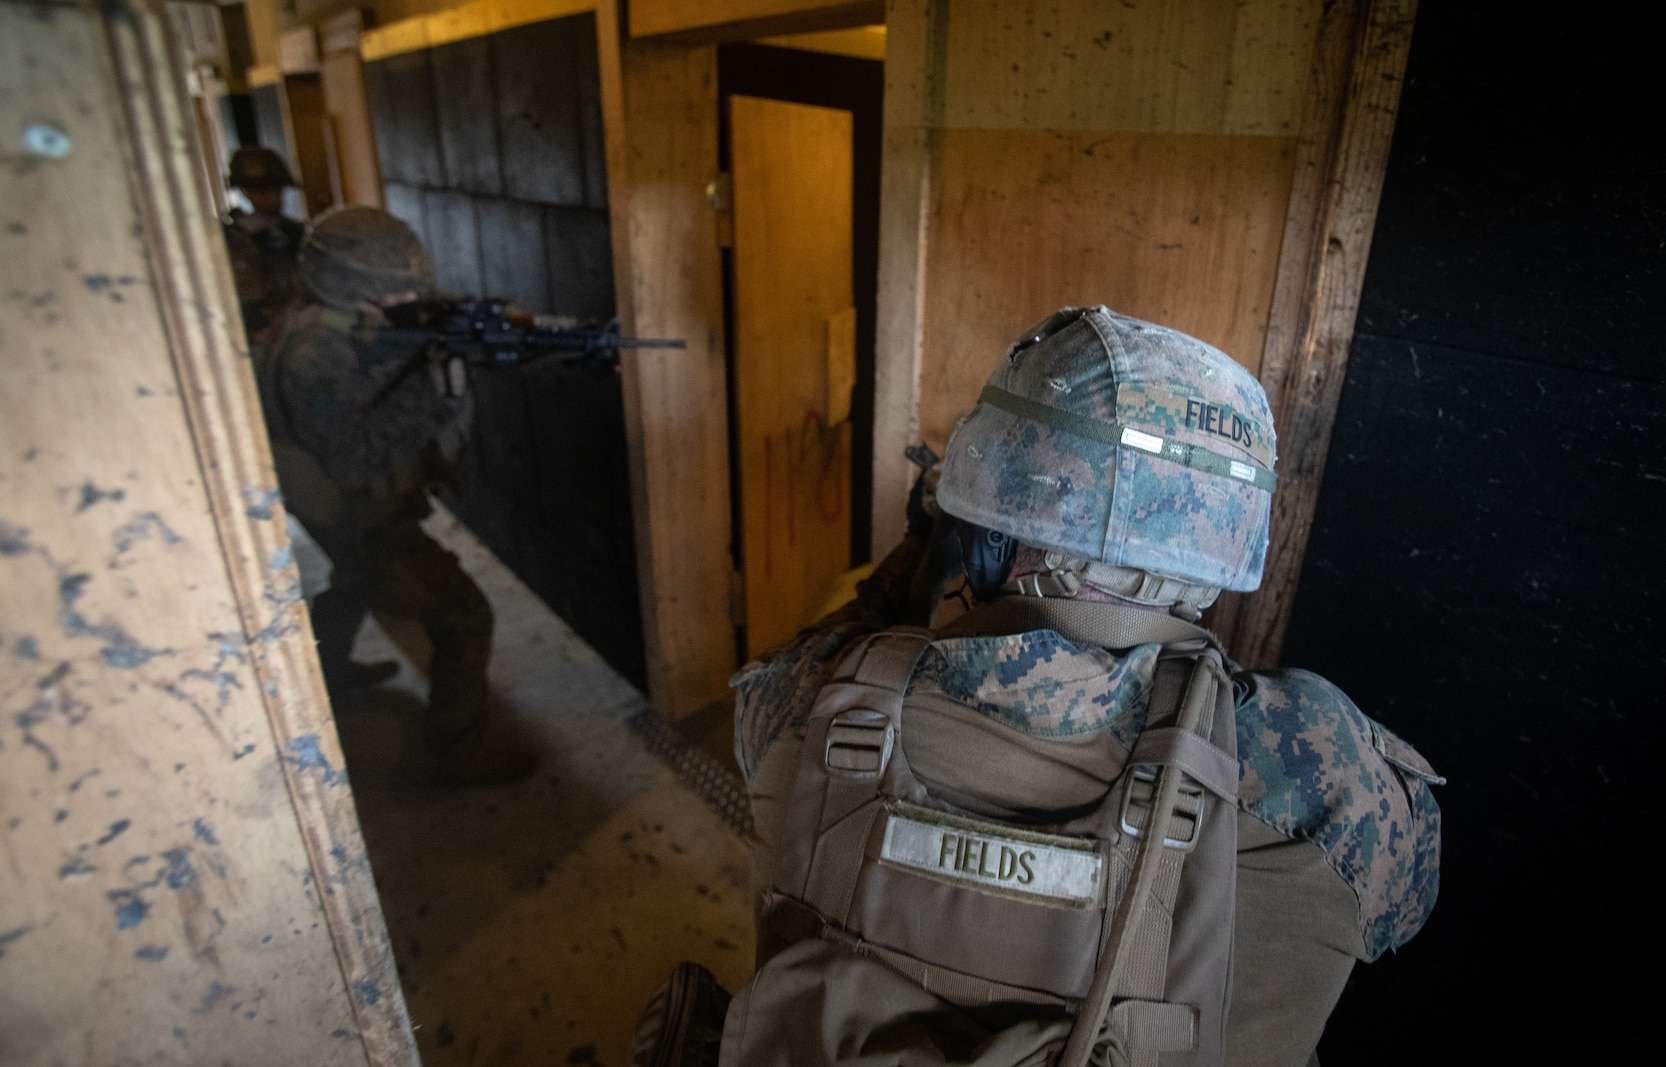 Cpl Fields conducts interior tactics training in Okinawa